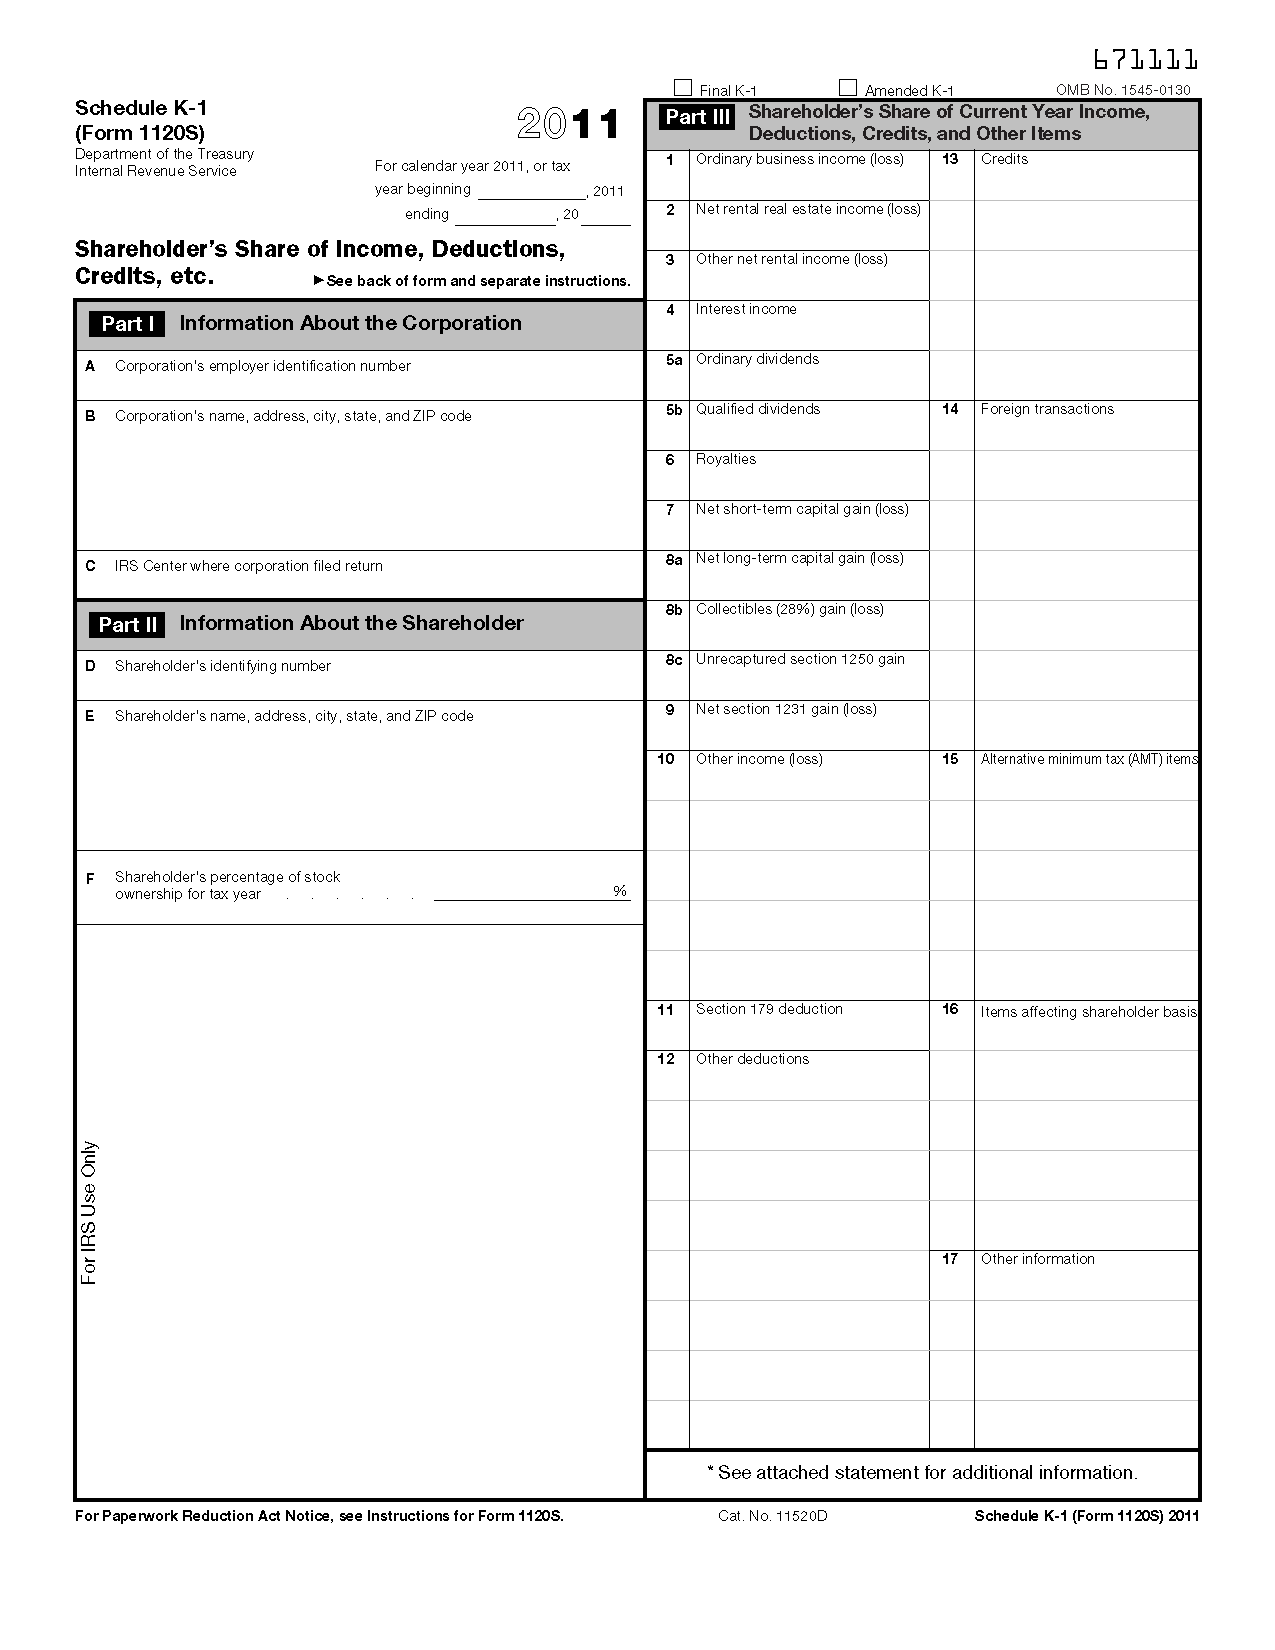 worksheet Shareholder Basis Worksheet form 1120 s schedule k 1 shareholders share of income view all 2011 irs tax forms